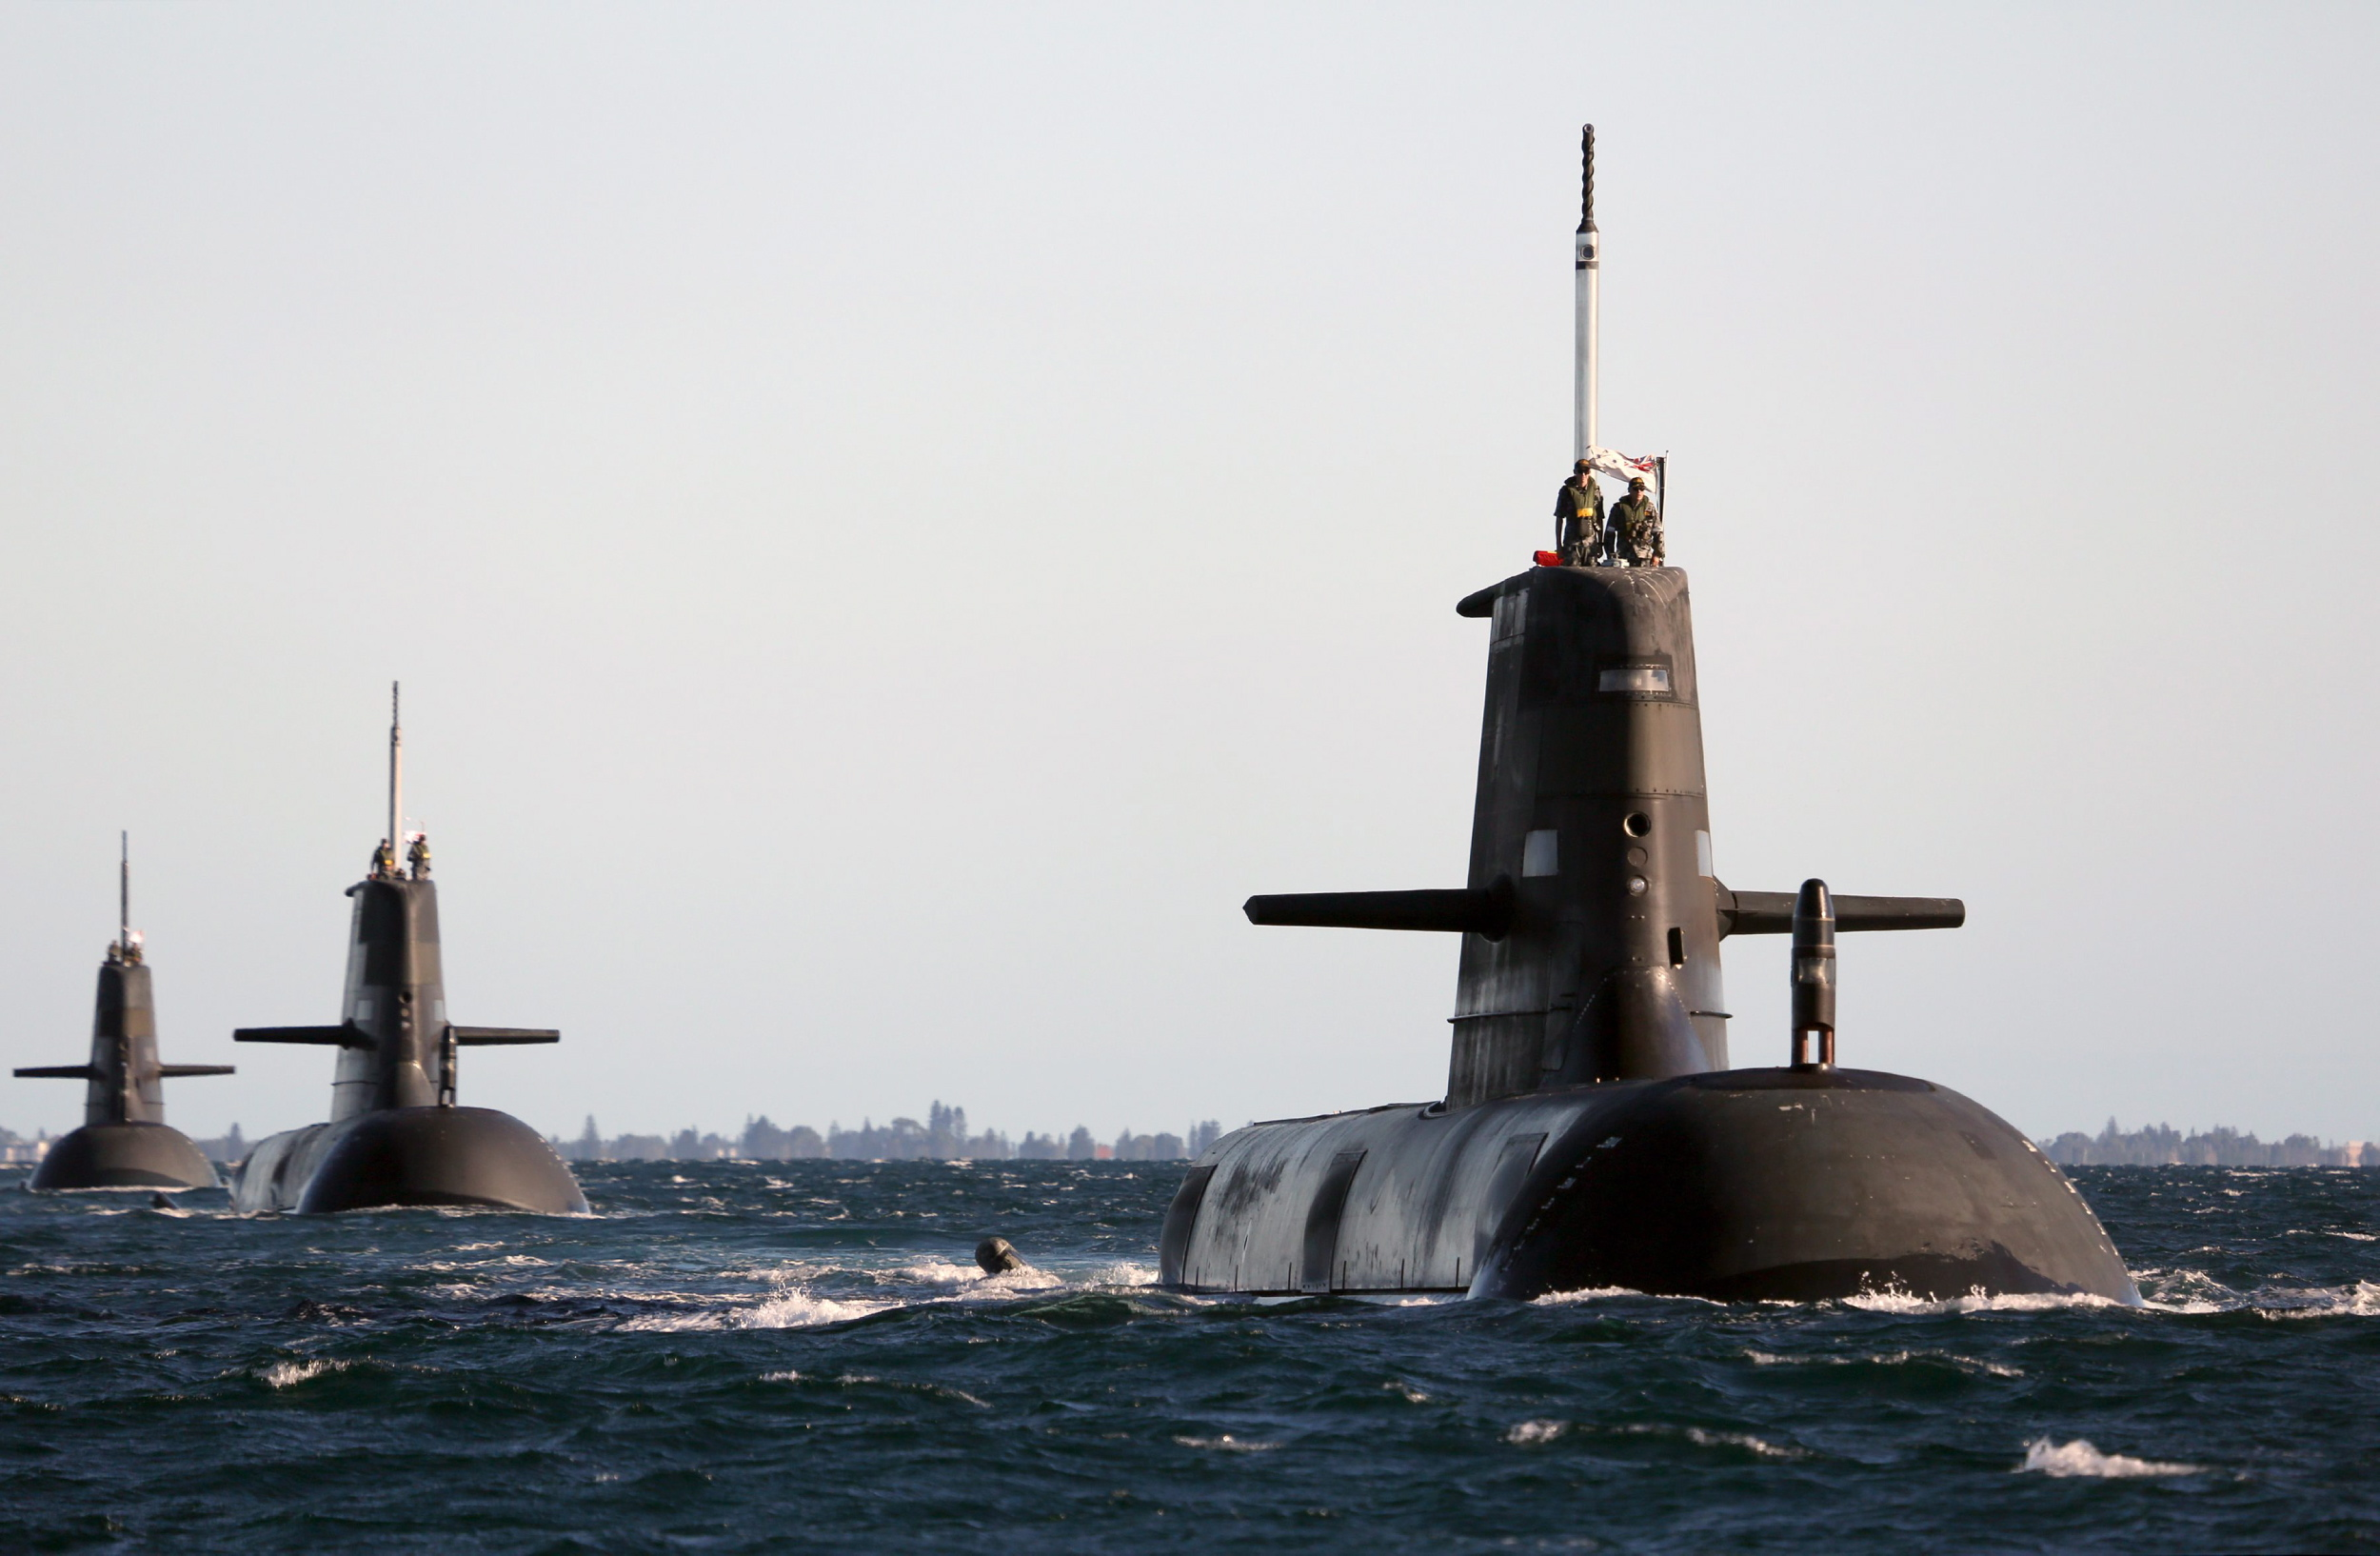 Collins-class attack boats HMAS Dechaineux leads HMAS Waller and HMAS Sheean in formation in Cockburn Sound, near Rockingham Western Australia in 2013. RAN Photo